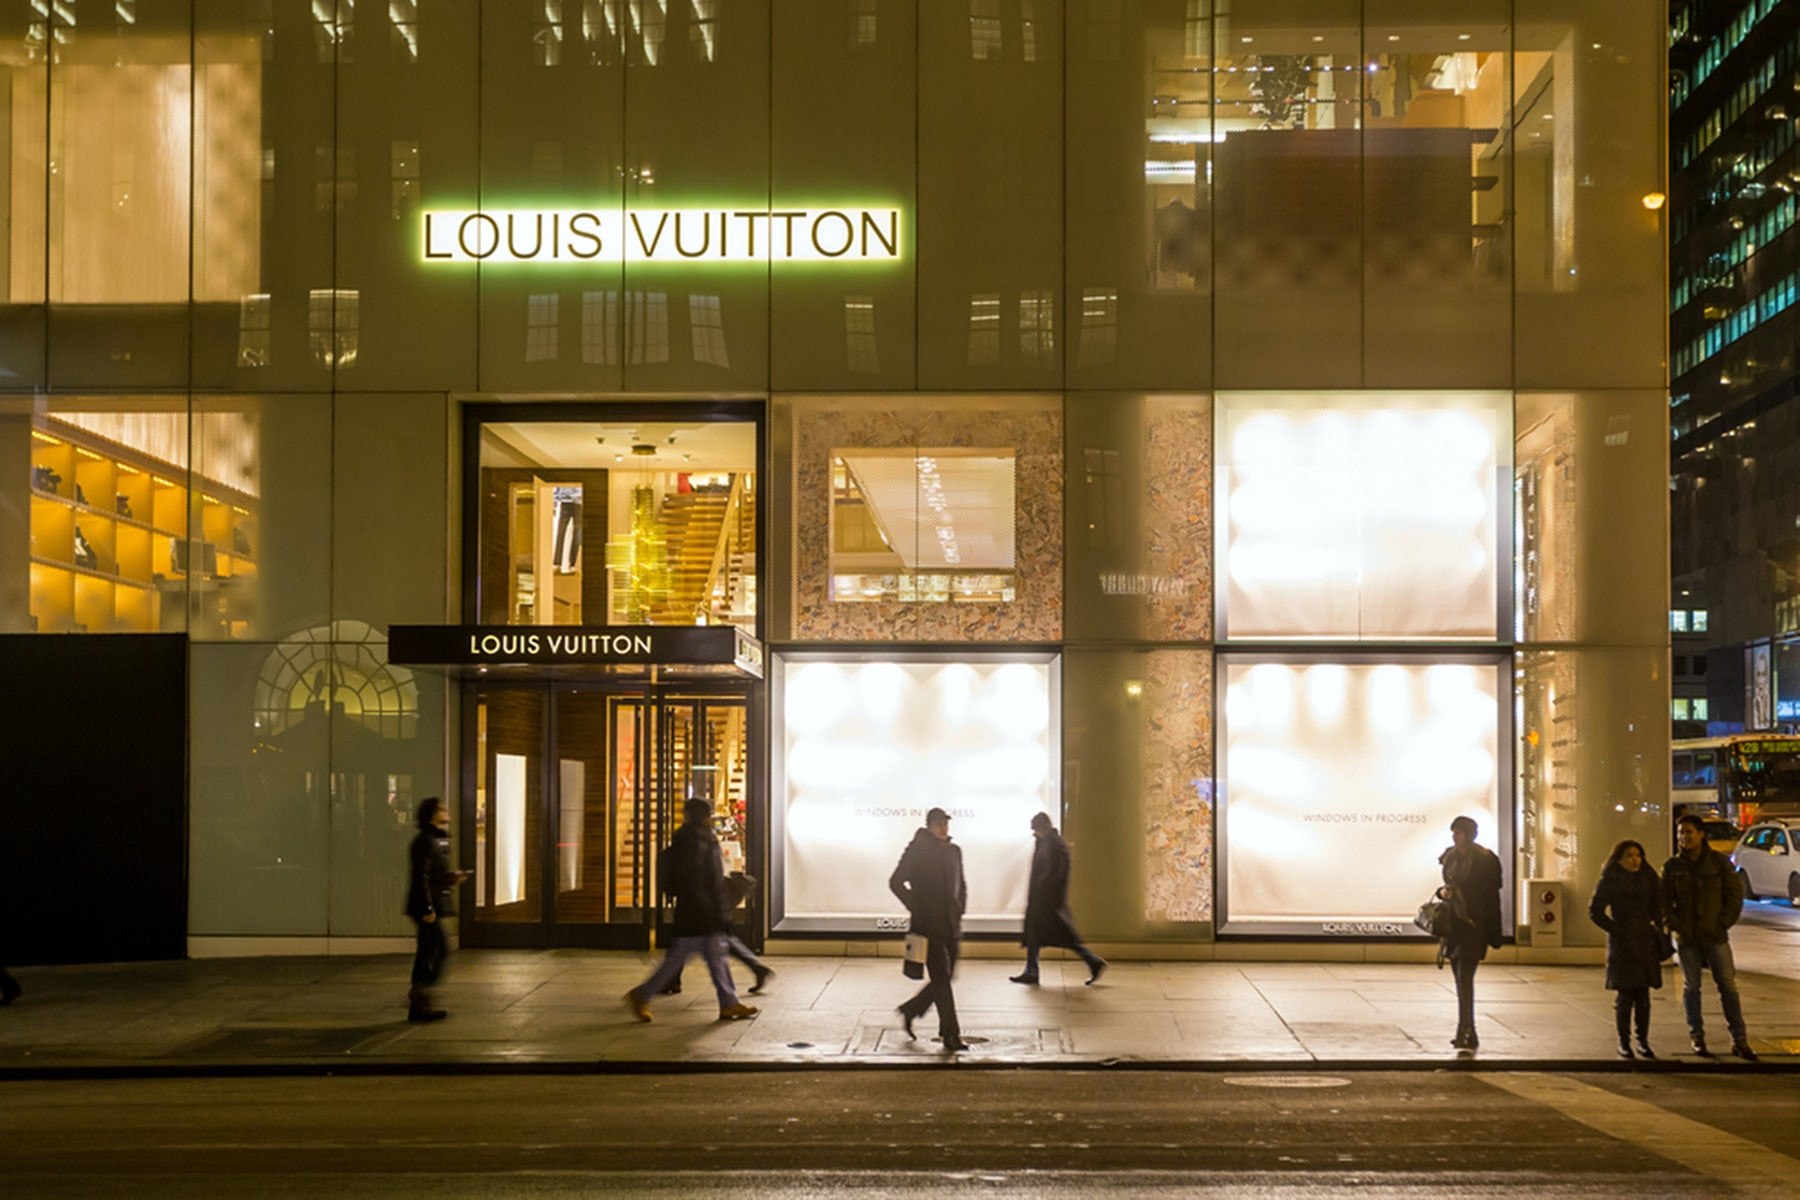 Louis Vuitton store | Source: Shutterstock